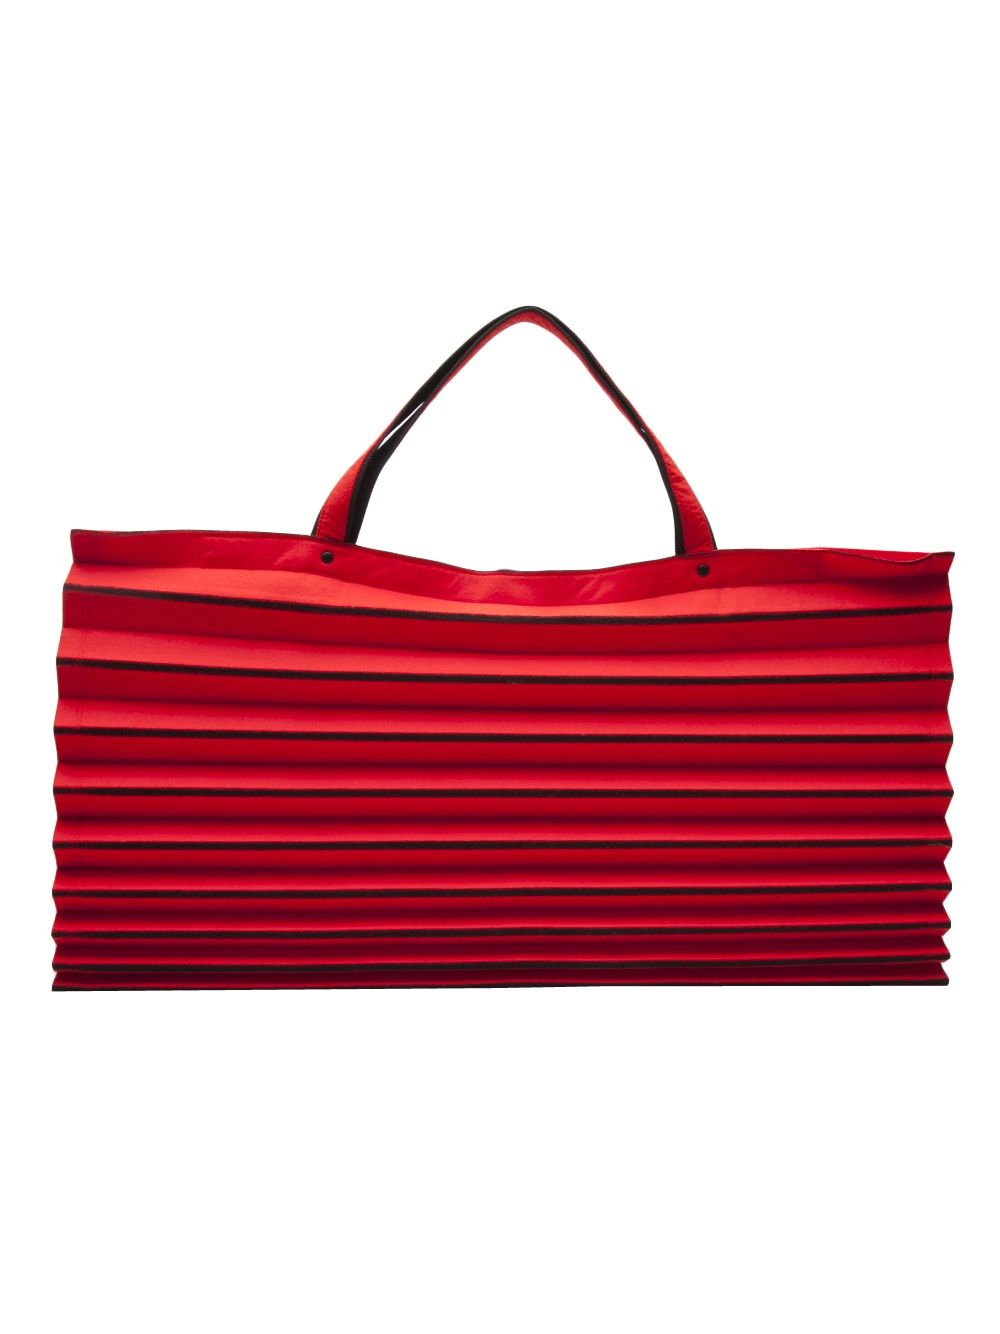 issey miyake vintage iconic pleated tote amarcord vintage fashion bags. Black Bedroom Furniture Sets. Home Design Ideas